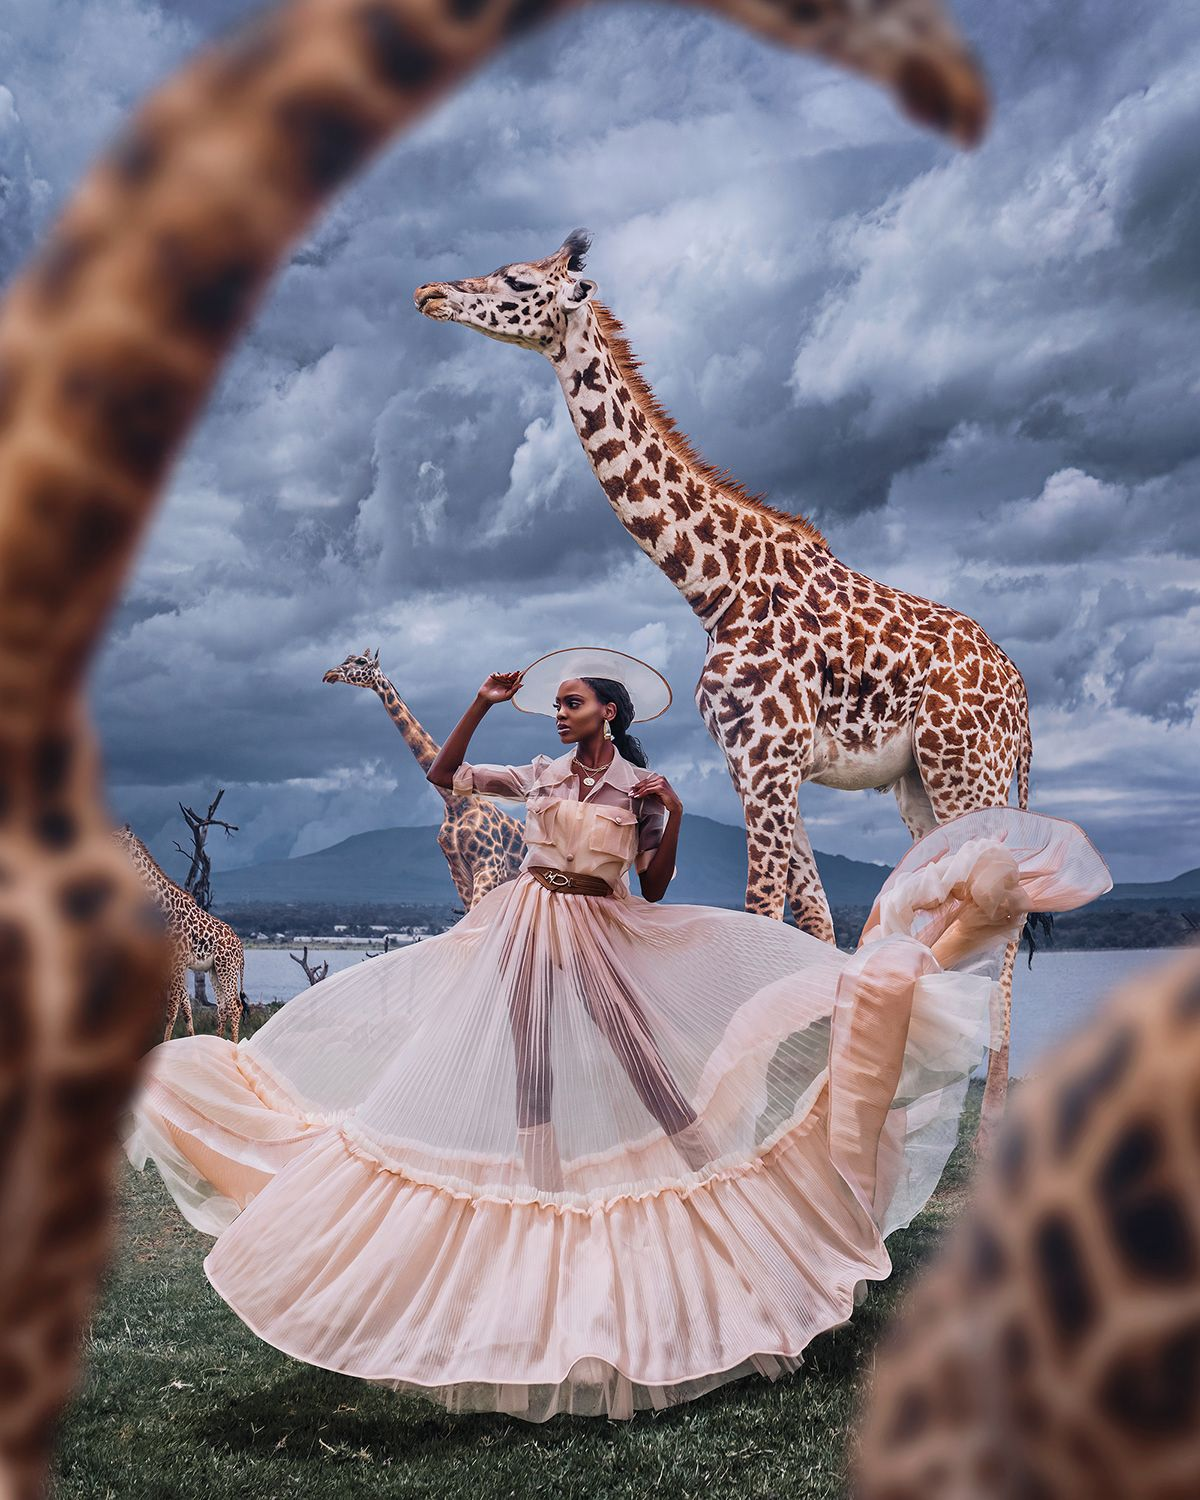 Fashion editorial in the Kenyan wilderness by Kristina Makeeva